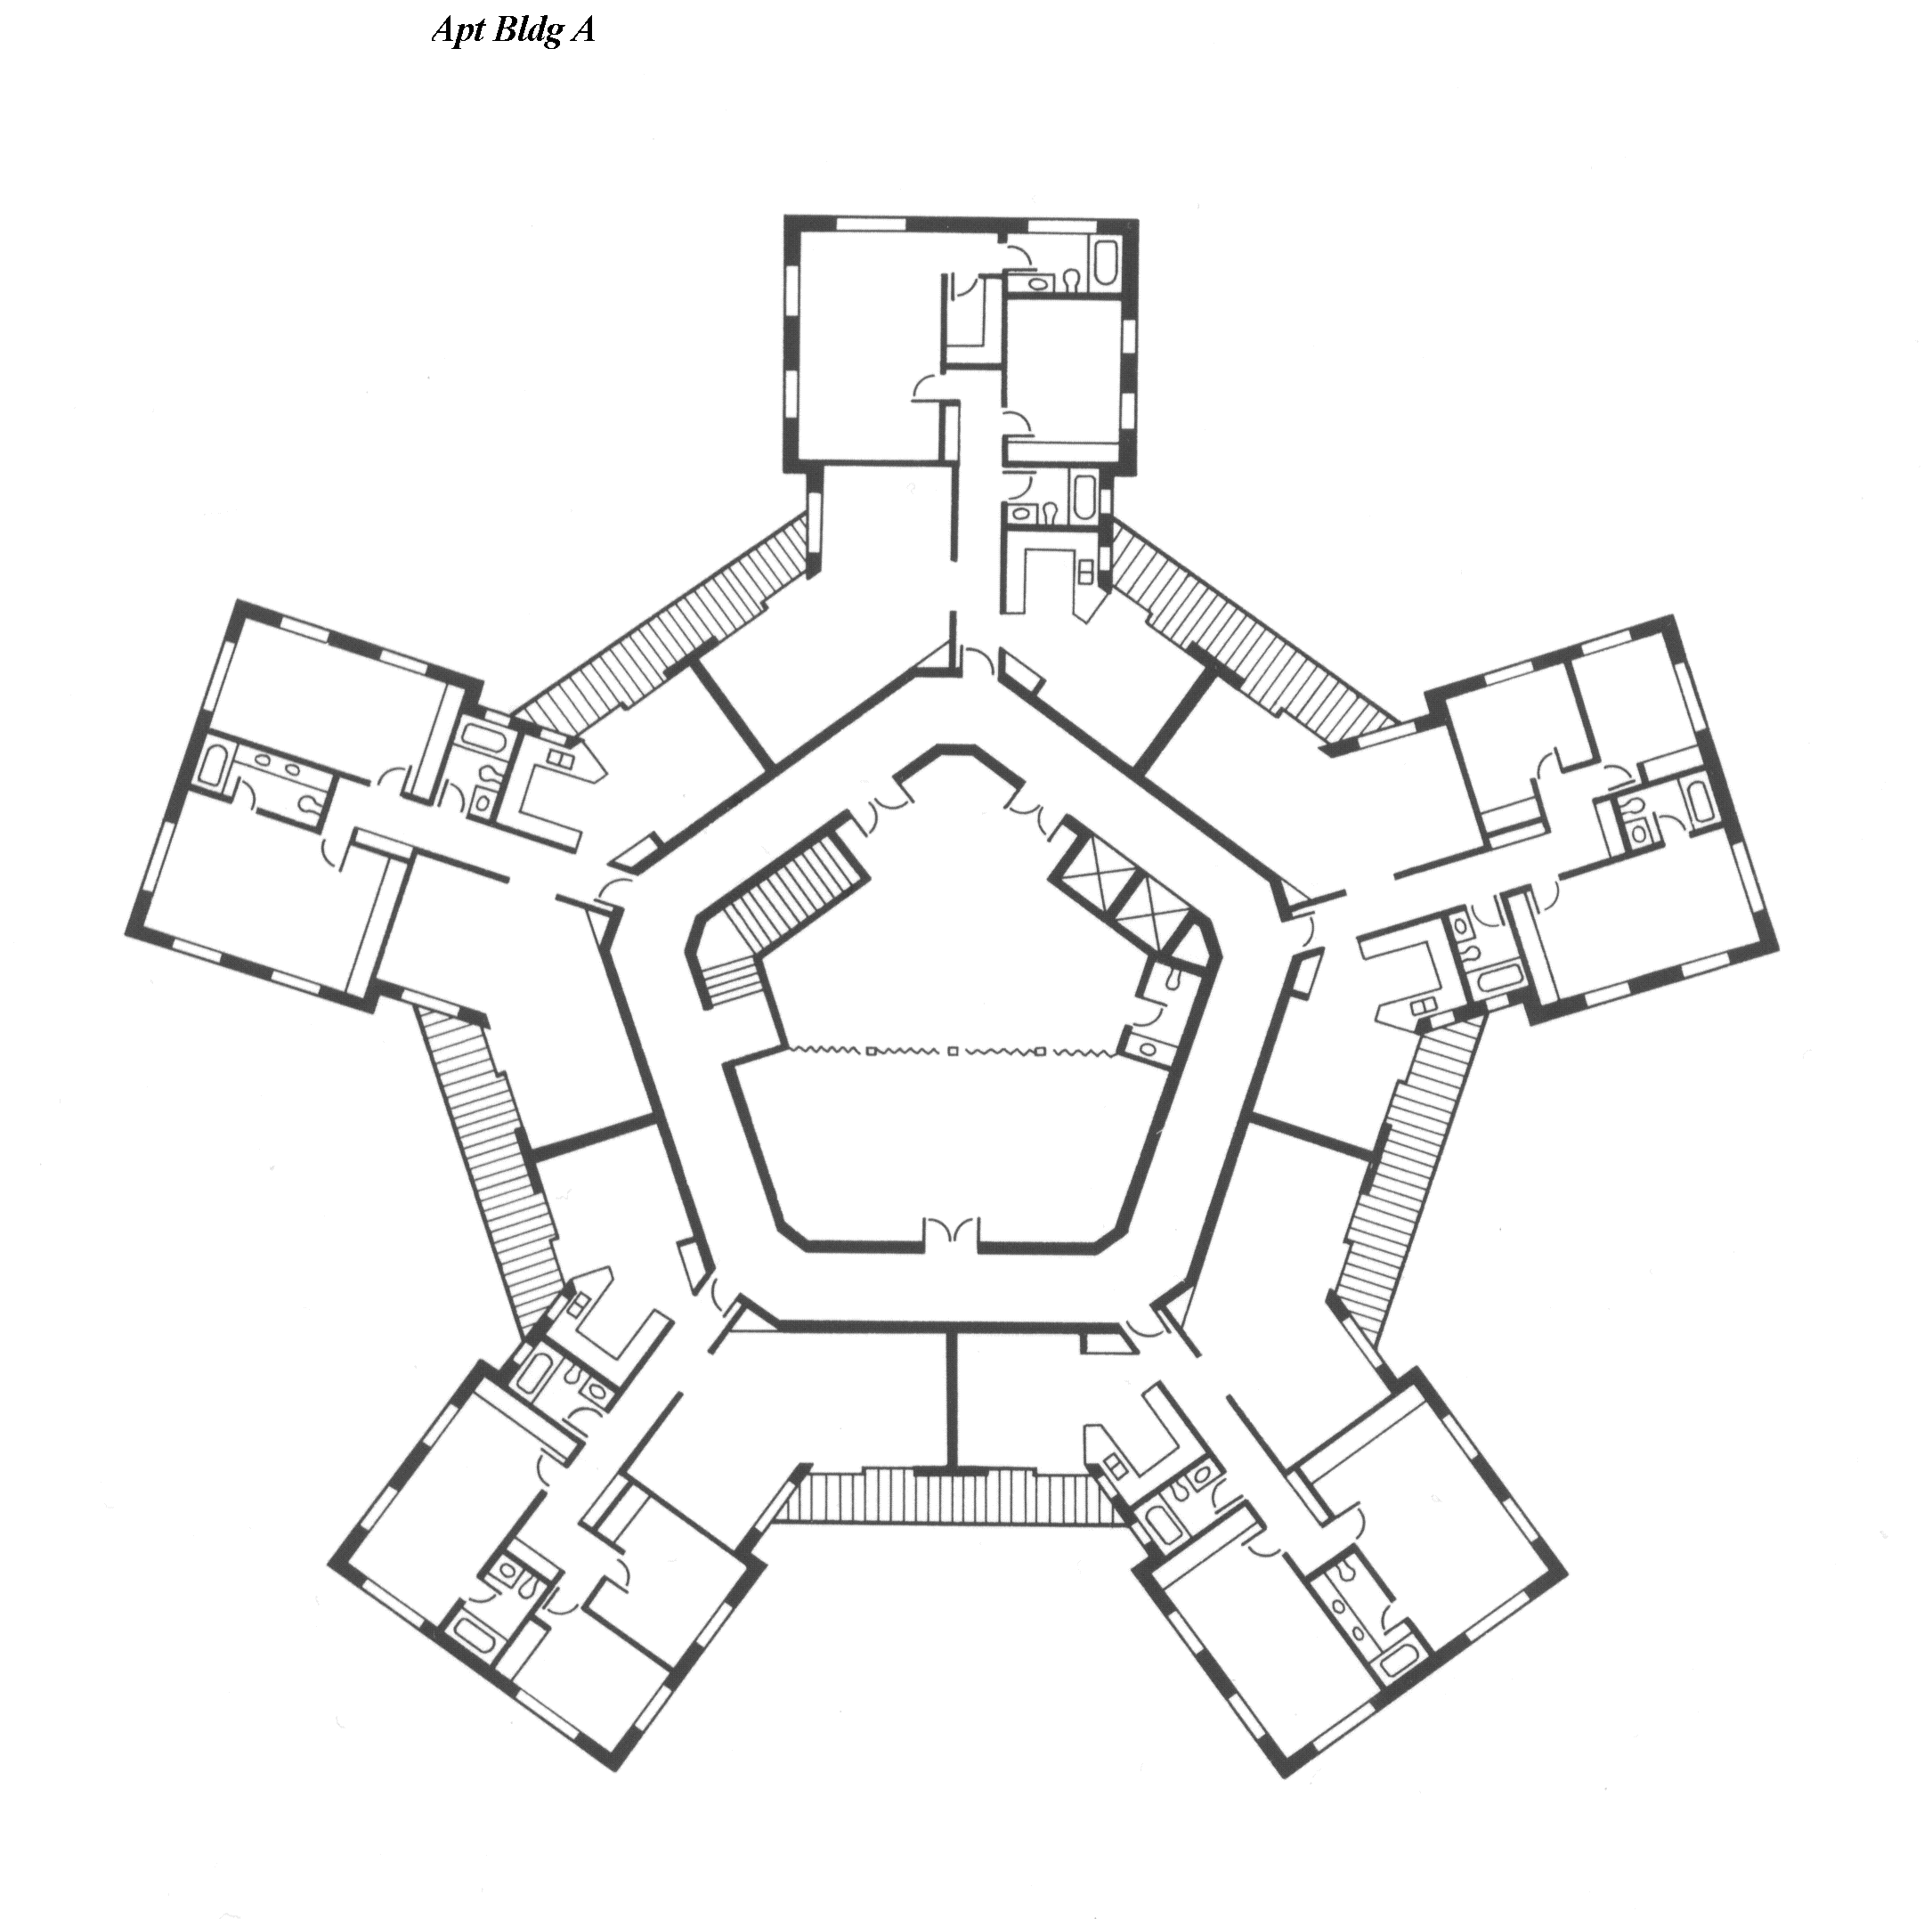 Drawings of various microcommunity mc configurations for Apartment plans building